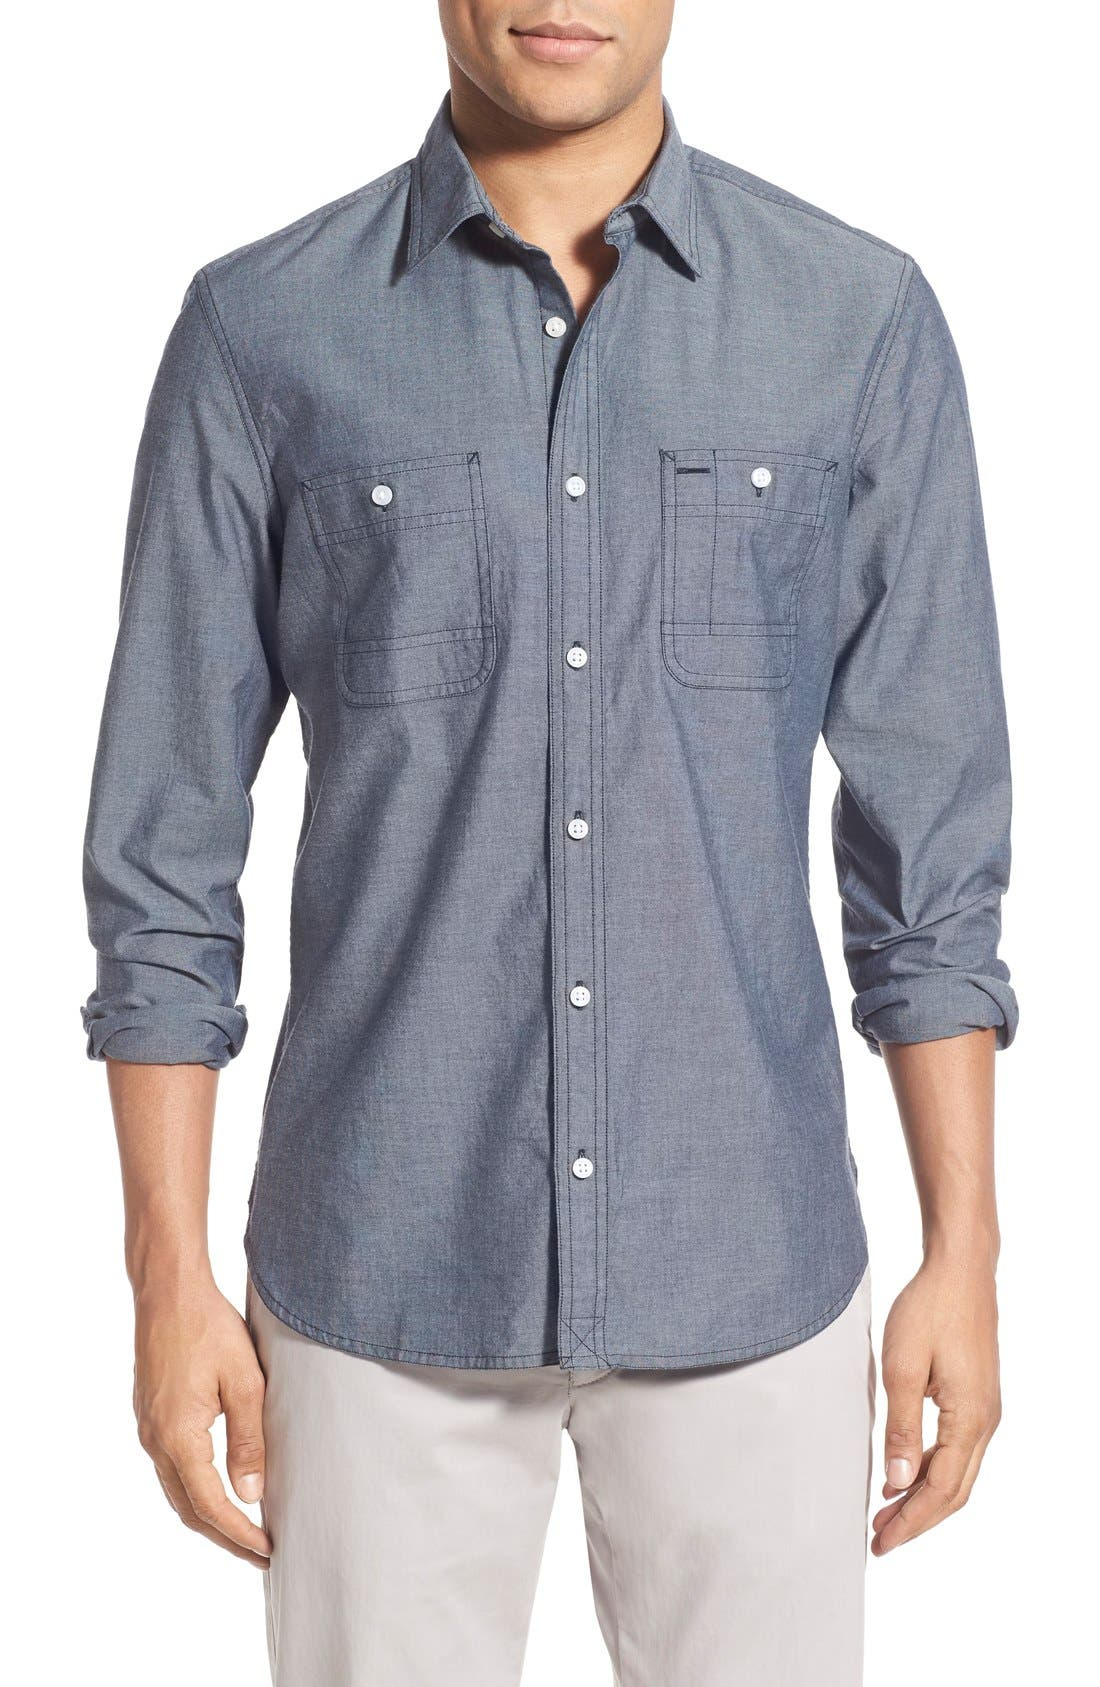 Alternate Image 1 Selected - Wallin & Bros. 'Workwear' Trim Fit Chambray Sport Shirt (Regular & Tall)